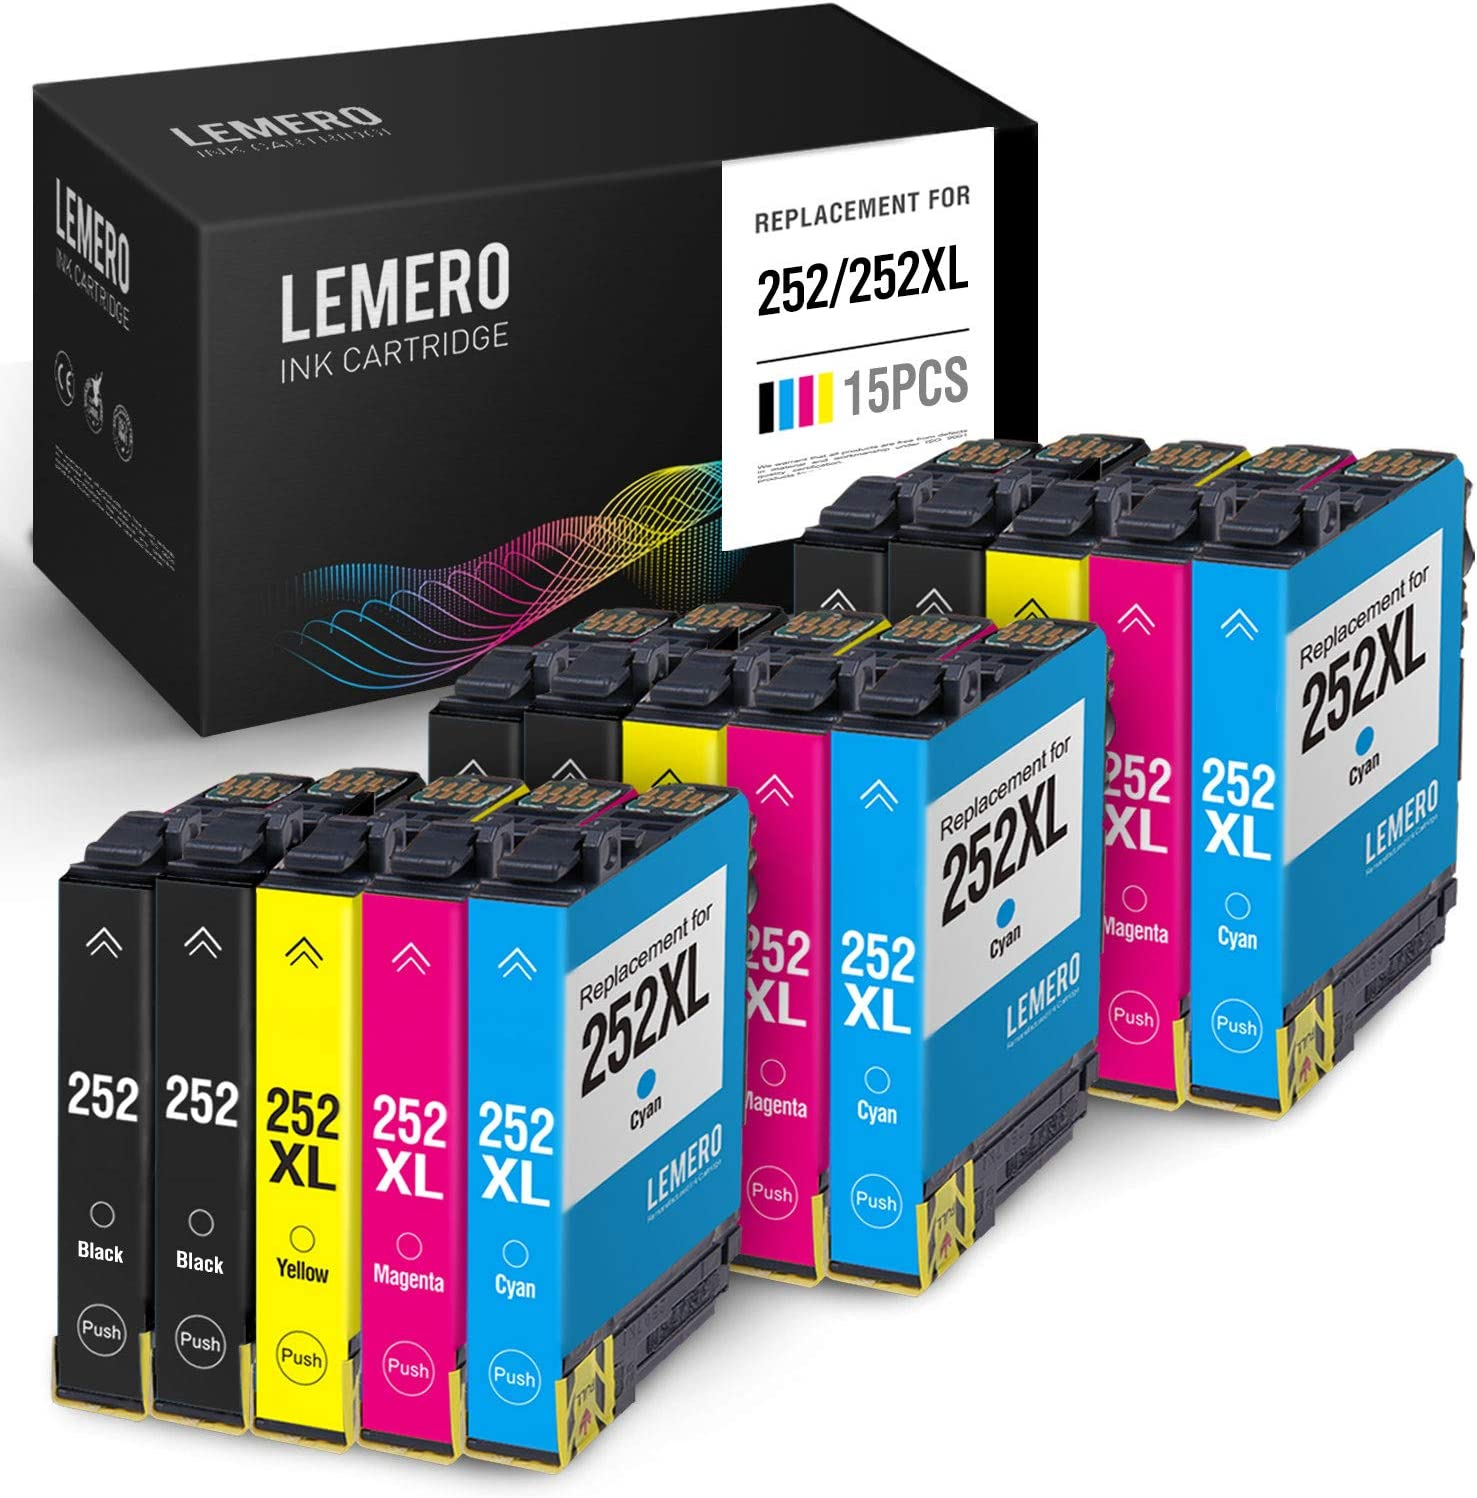 LEMERO Remanufactured Ink Cartridges Replacement for Epson 252 252XL 252 XL T252XL- for Epson Workforce WF-7710 WF-7720 WF-3640 WF-3620 WF-7620 WF-7110 WF-7610 (Black Cyan Magenta Yellow, 15 Pack)